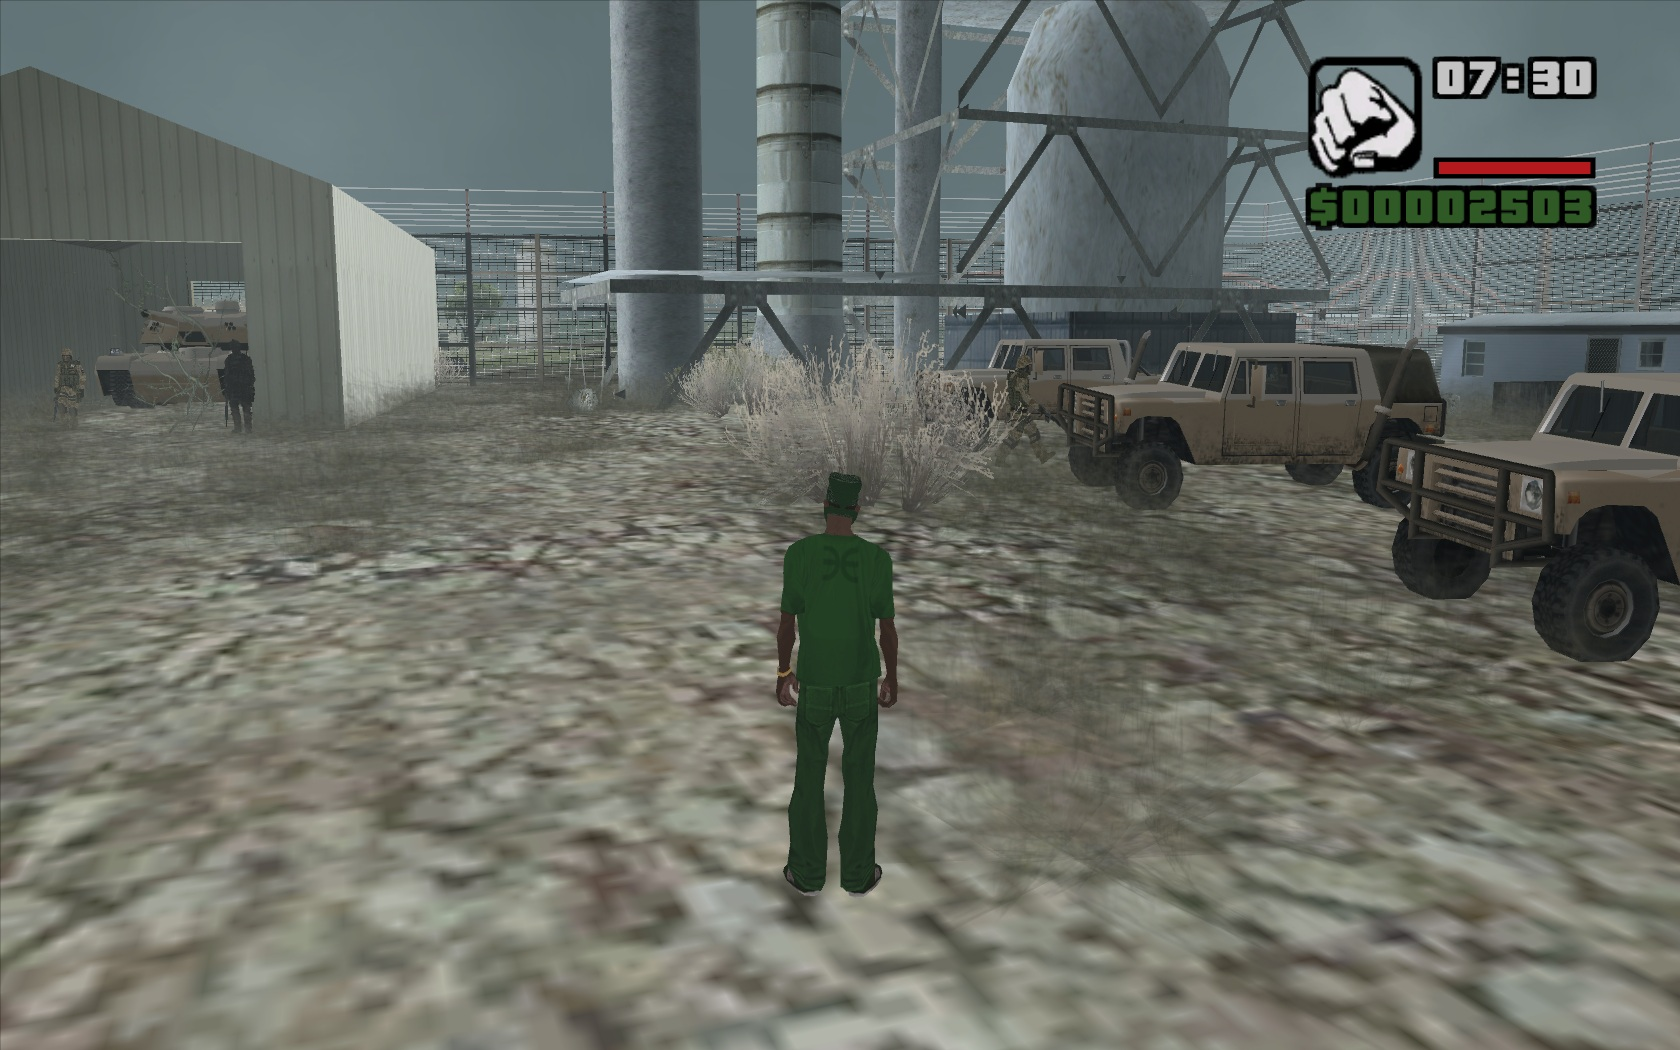 Gta san andreas title video download